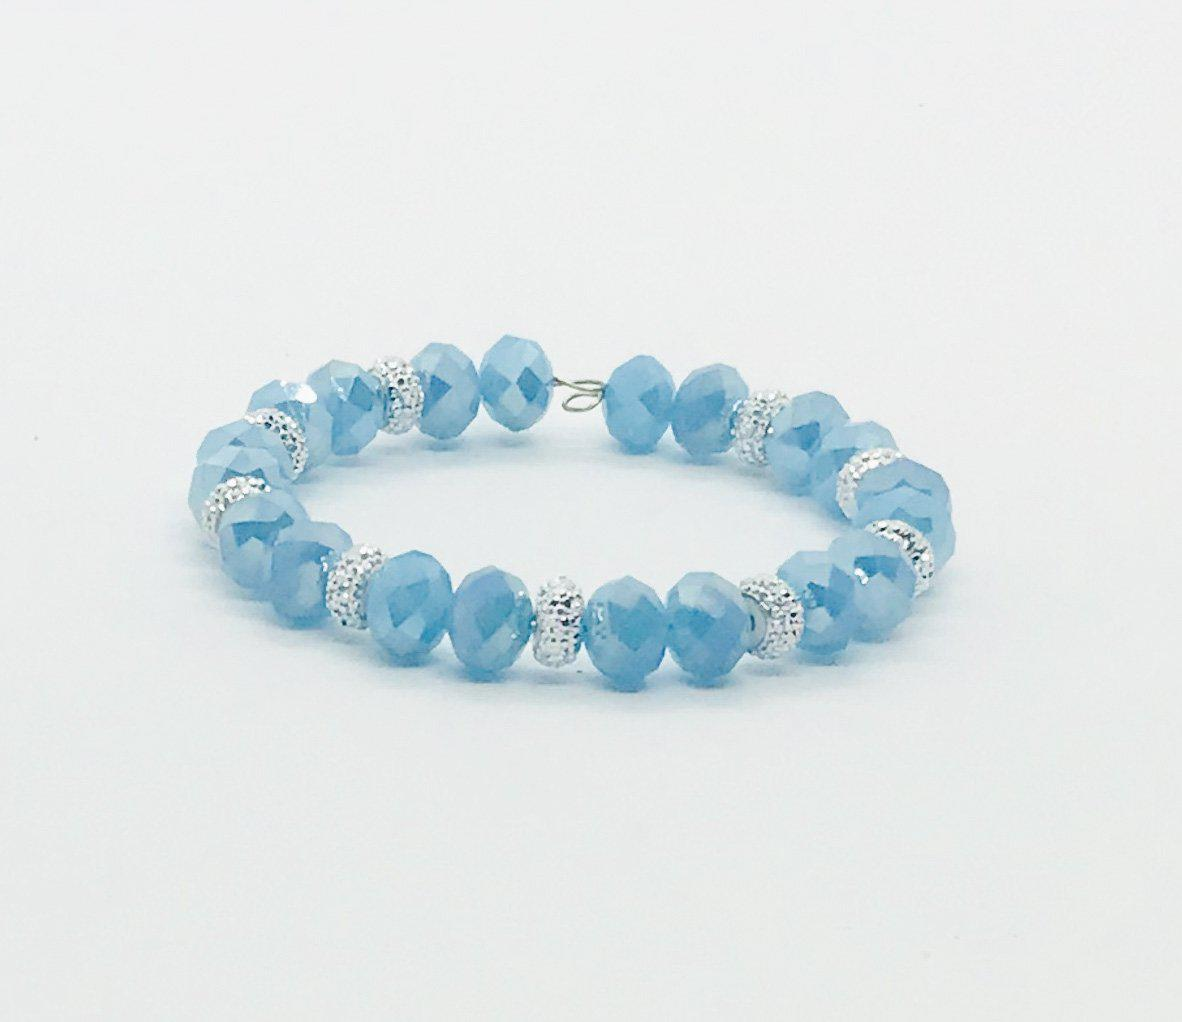 Glass Bead Wrap Bracelet - MB356